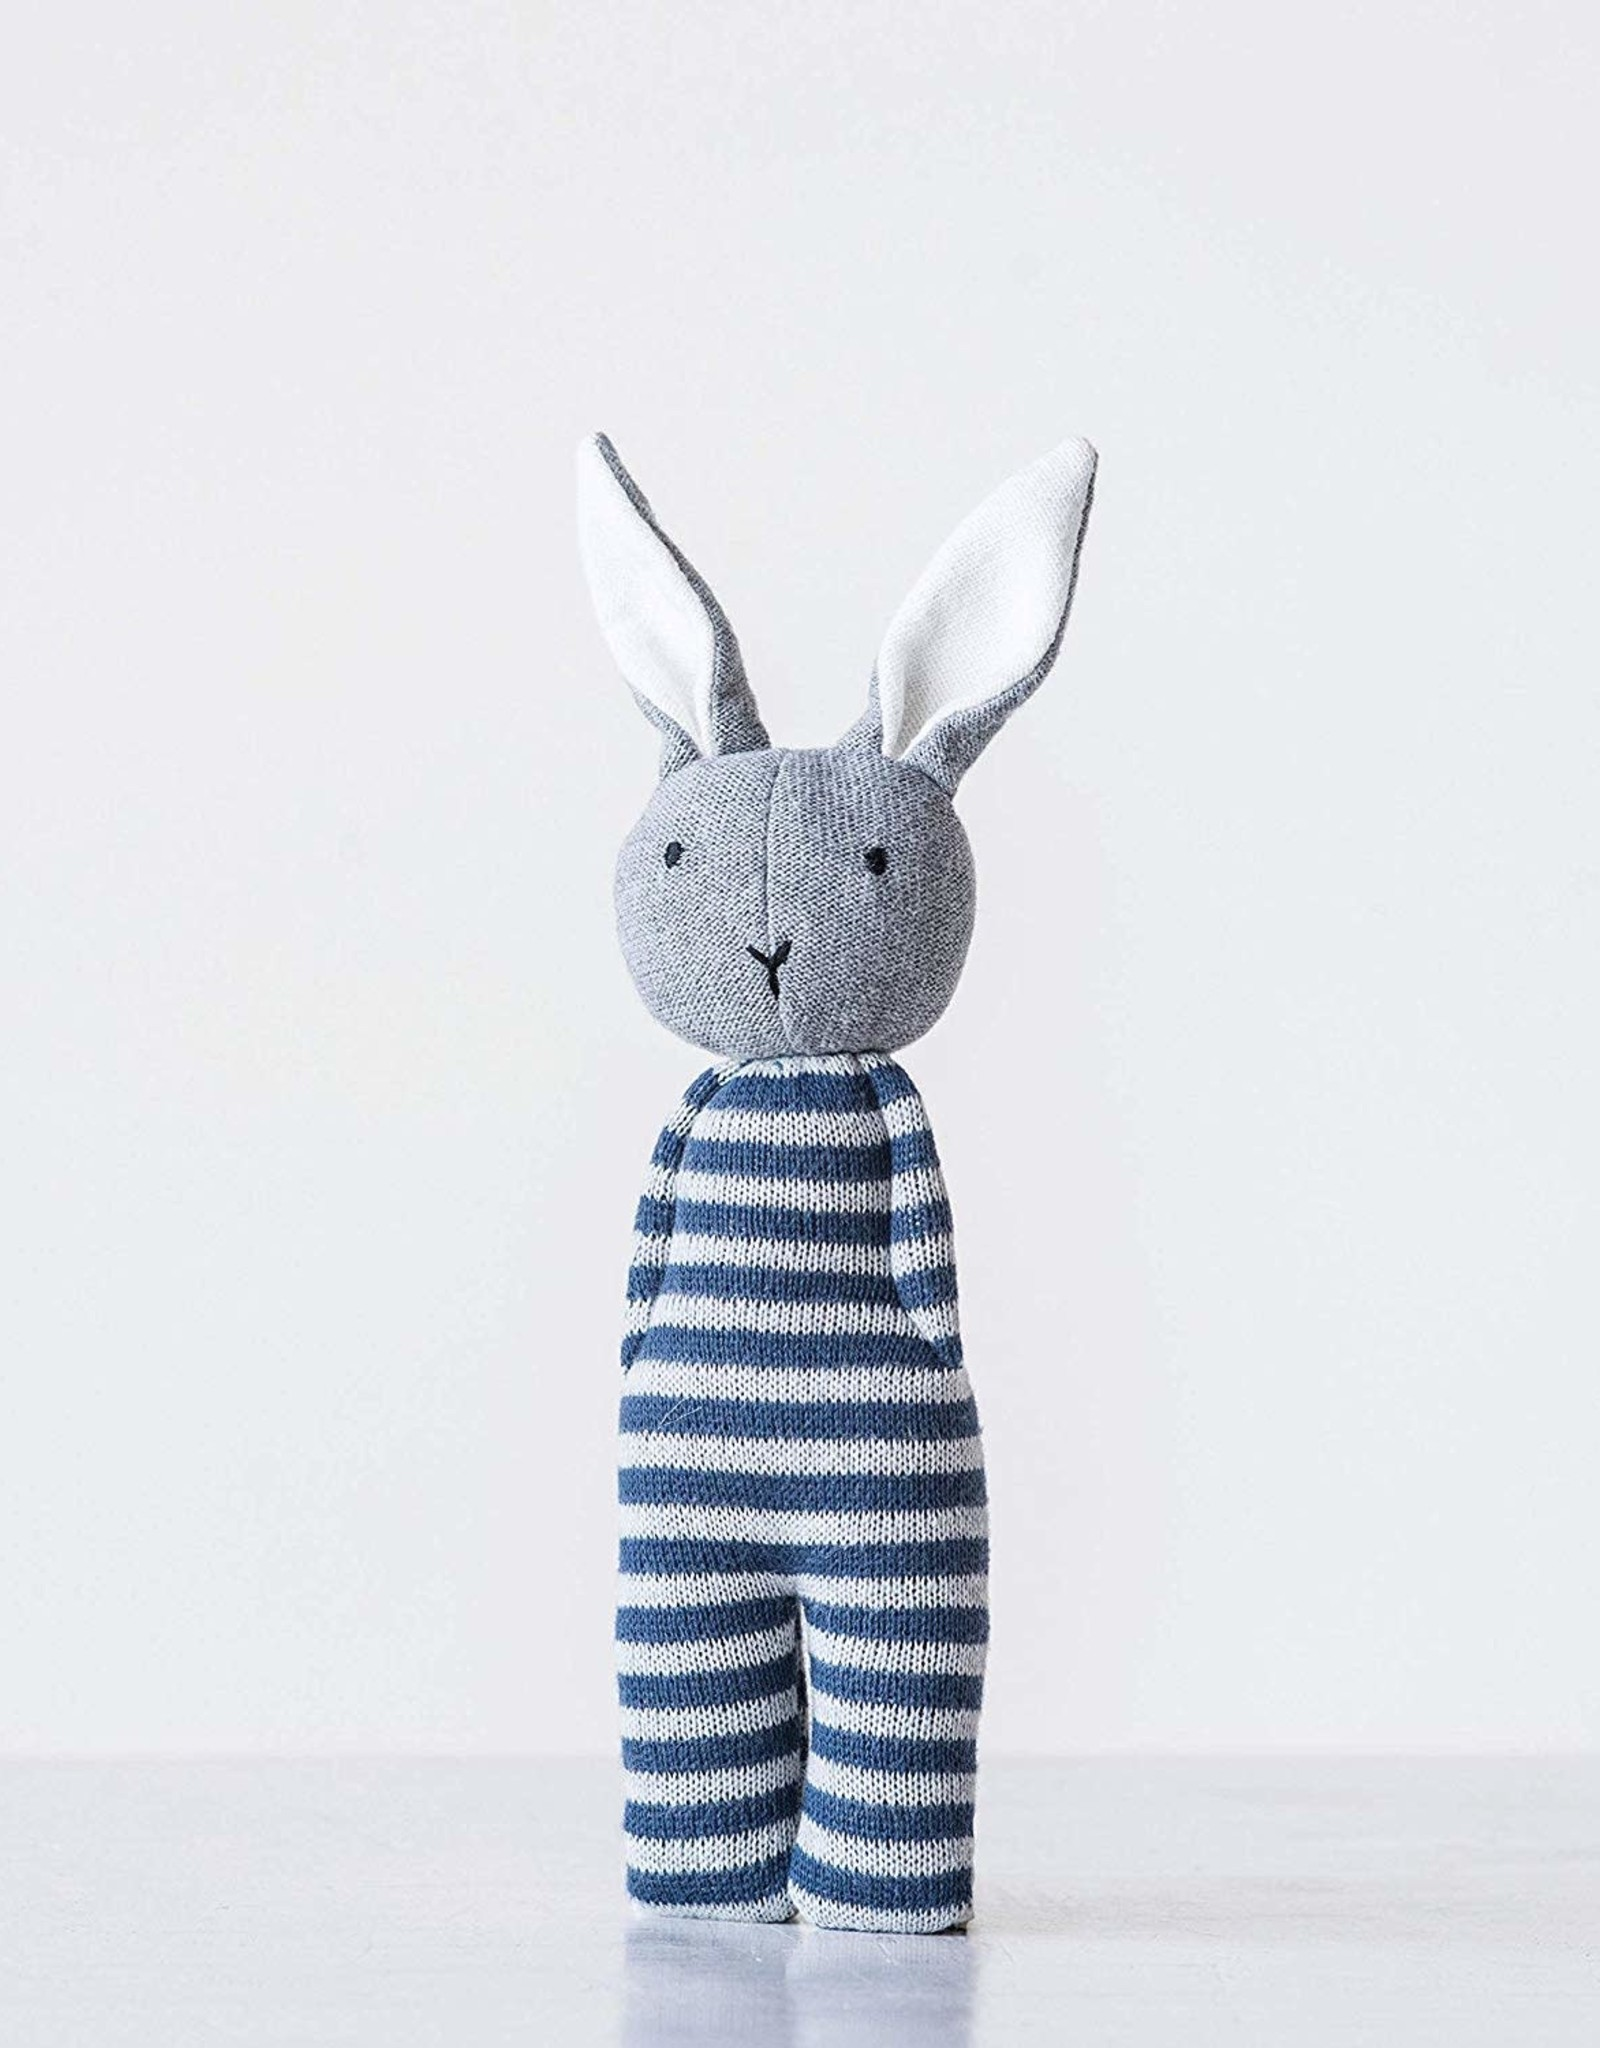 creativeco-op White and blue striped cotton rattle knit bunny